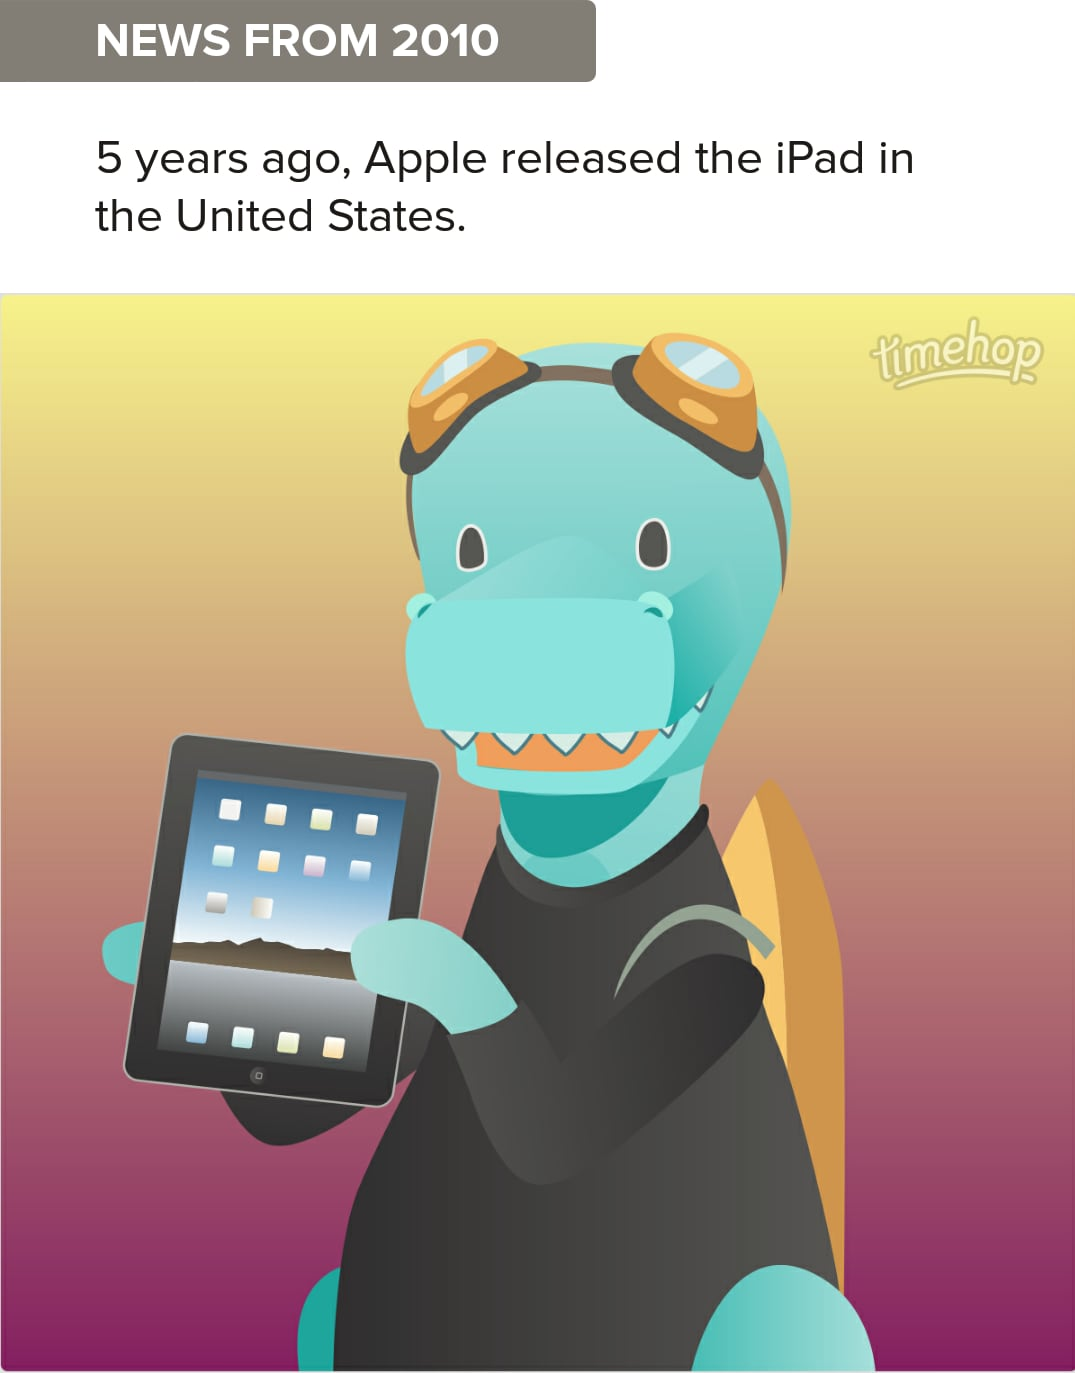 TimeHop compleanno iPad